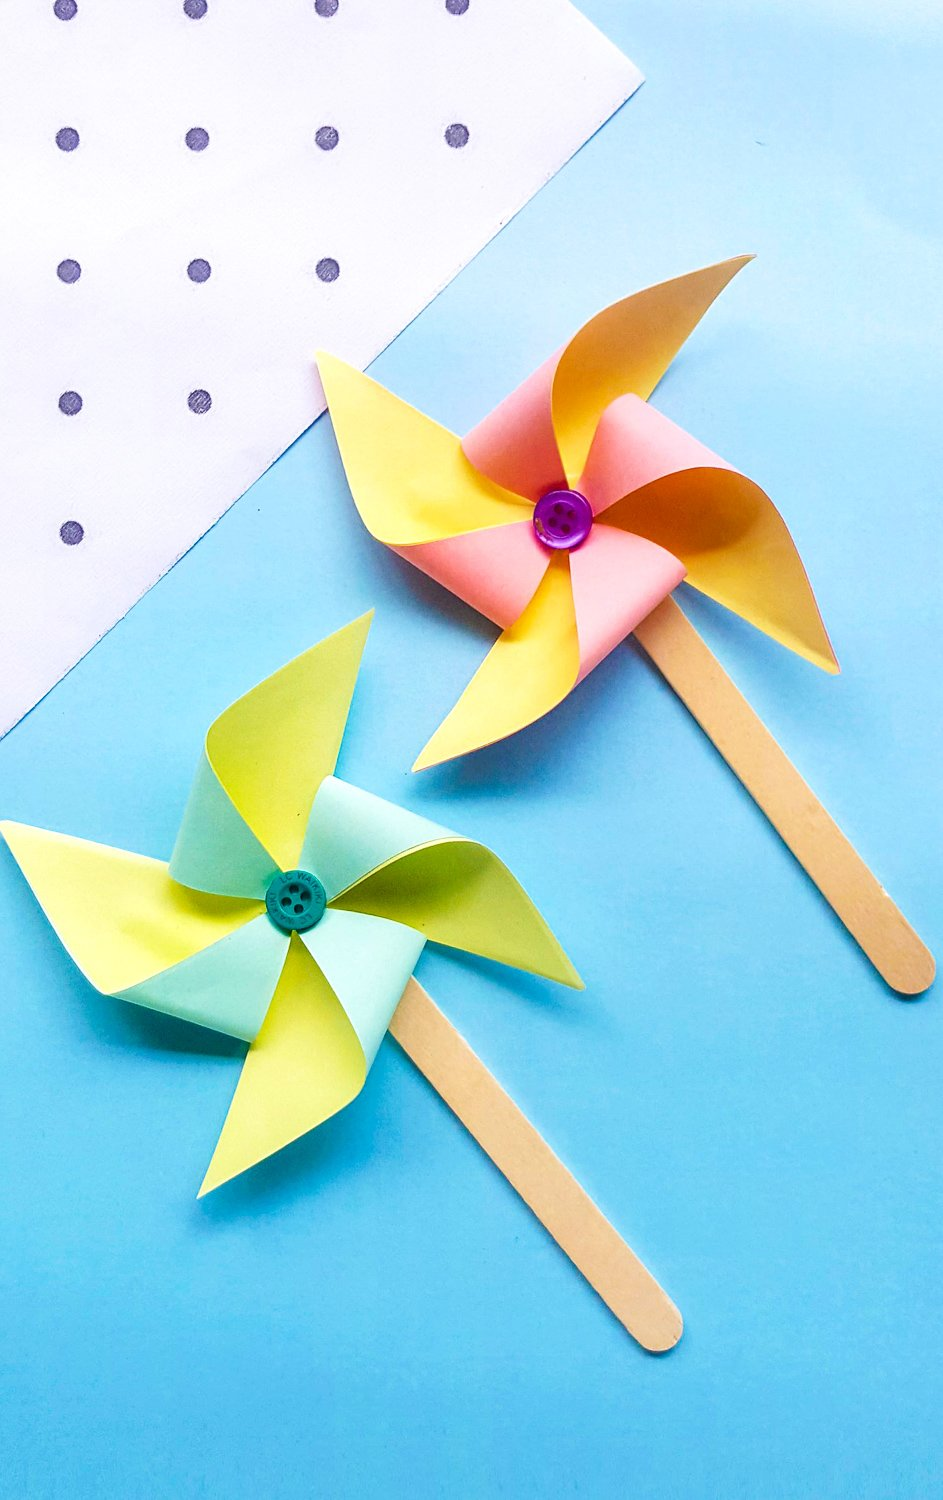 I was looking for a fun and easy, simple craft to keep my little one busy, so I decided to teach her how to make pinwheels. #fun #stepbystep #pinwheels #forkids